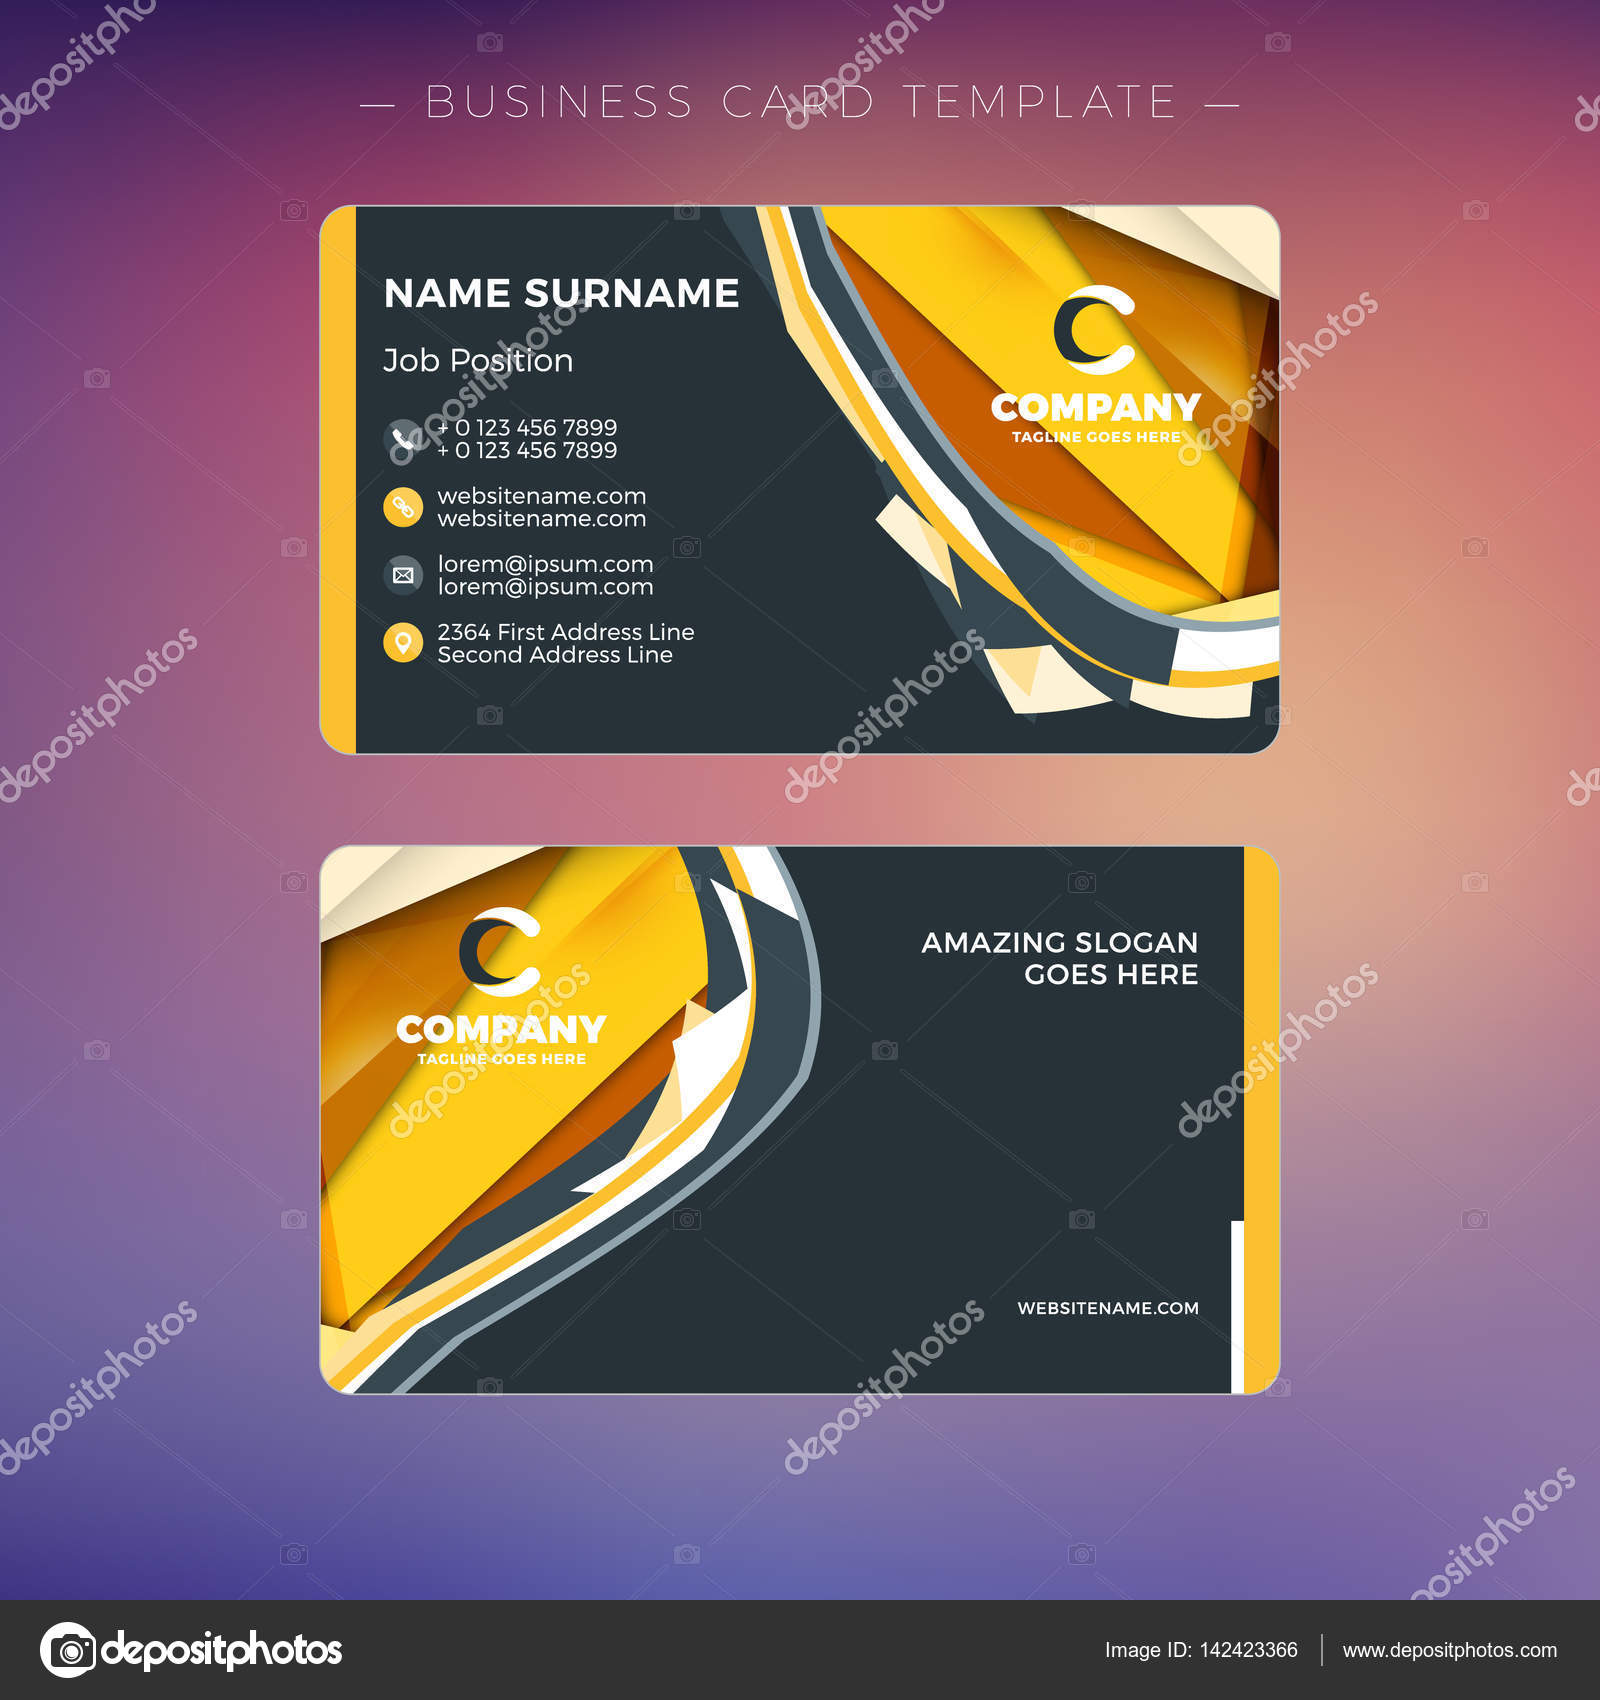 Creative business card template with abstract background vector creative business card template with abstract background vector illustration stationery design stock vector cheaphphosting Gallery